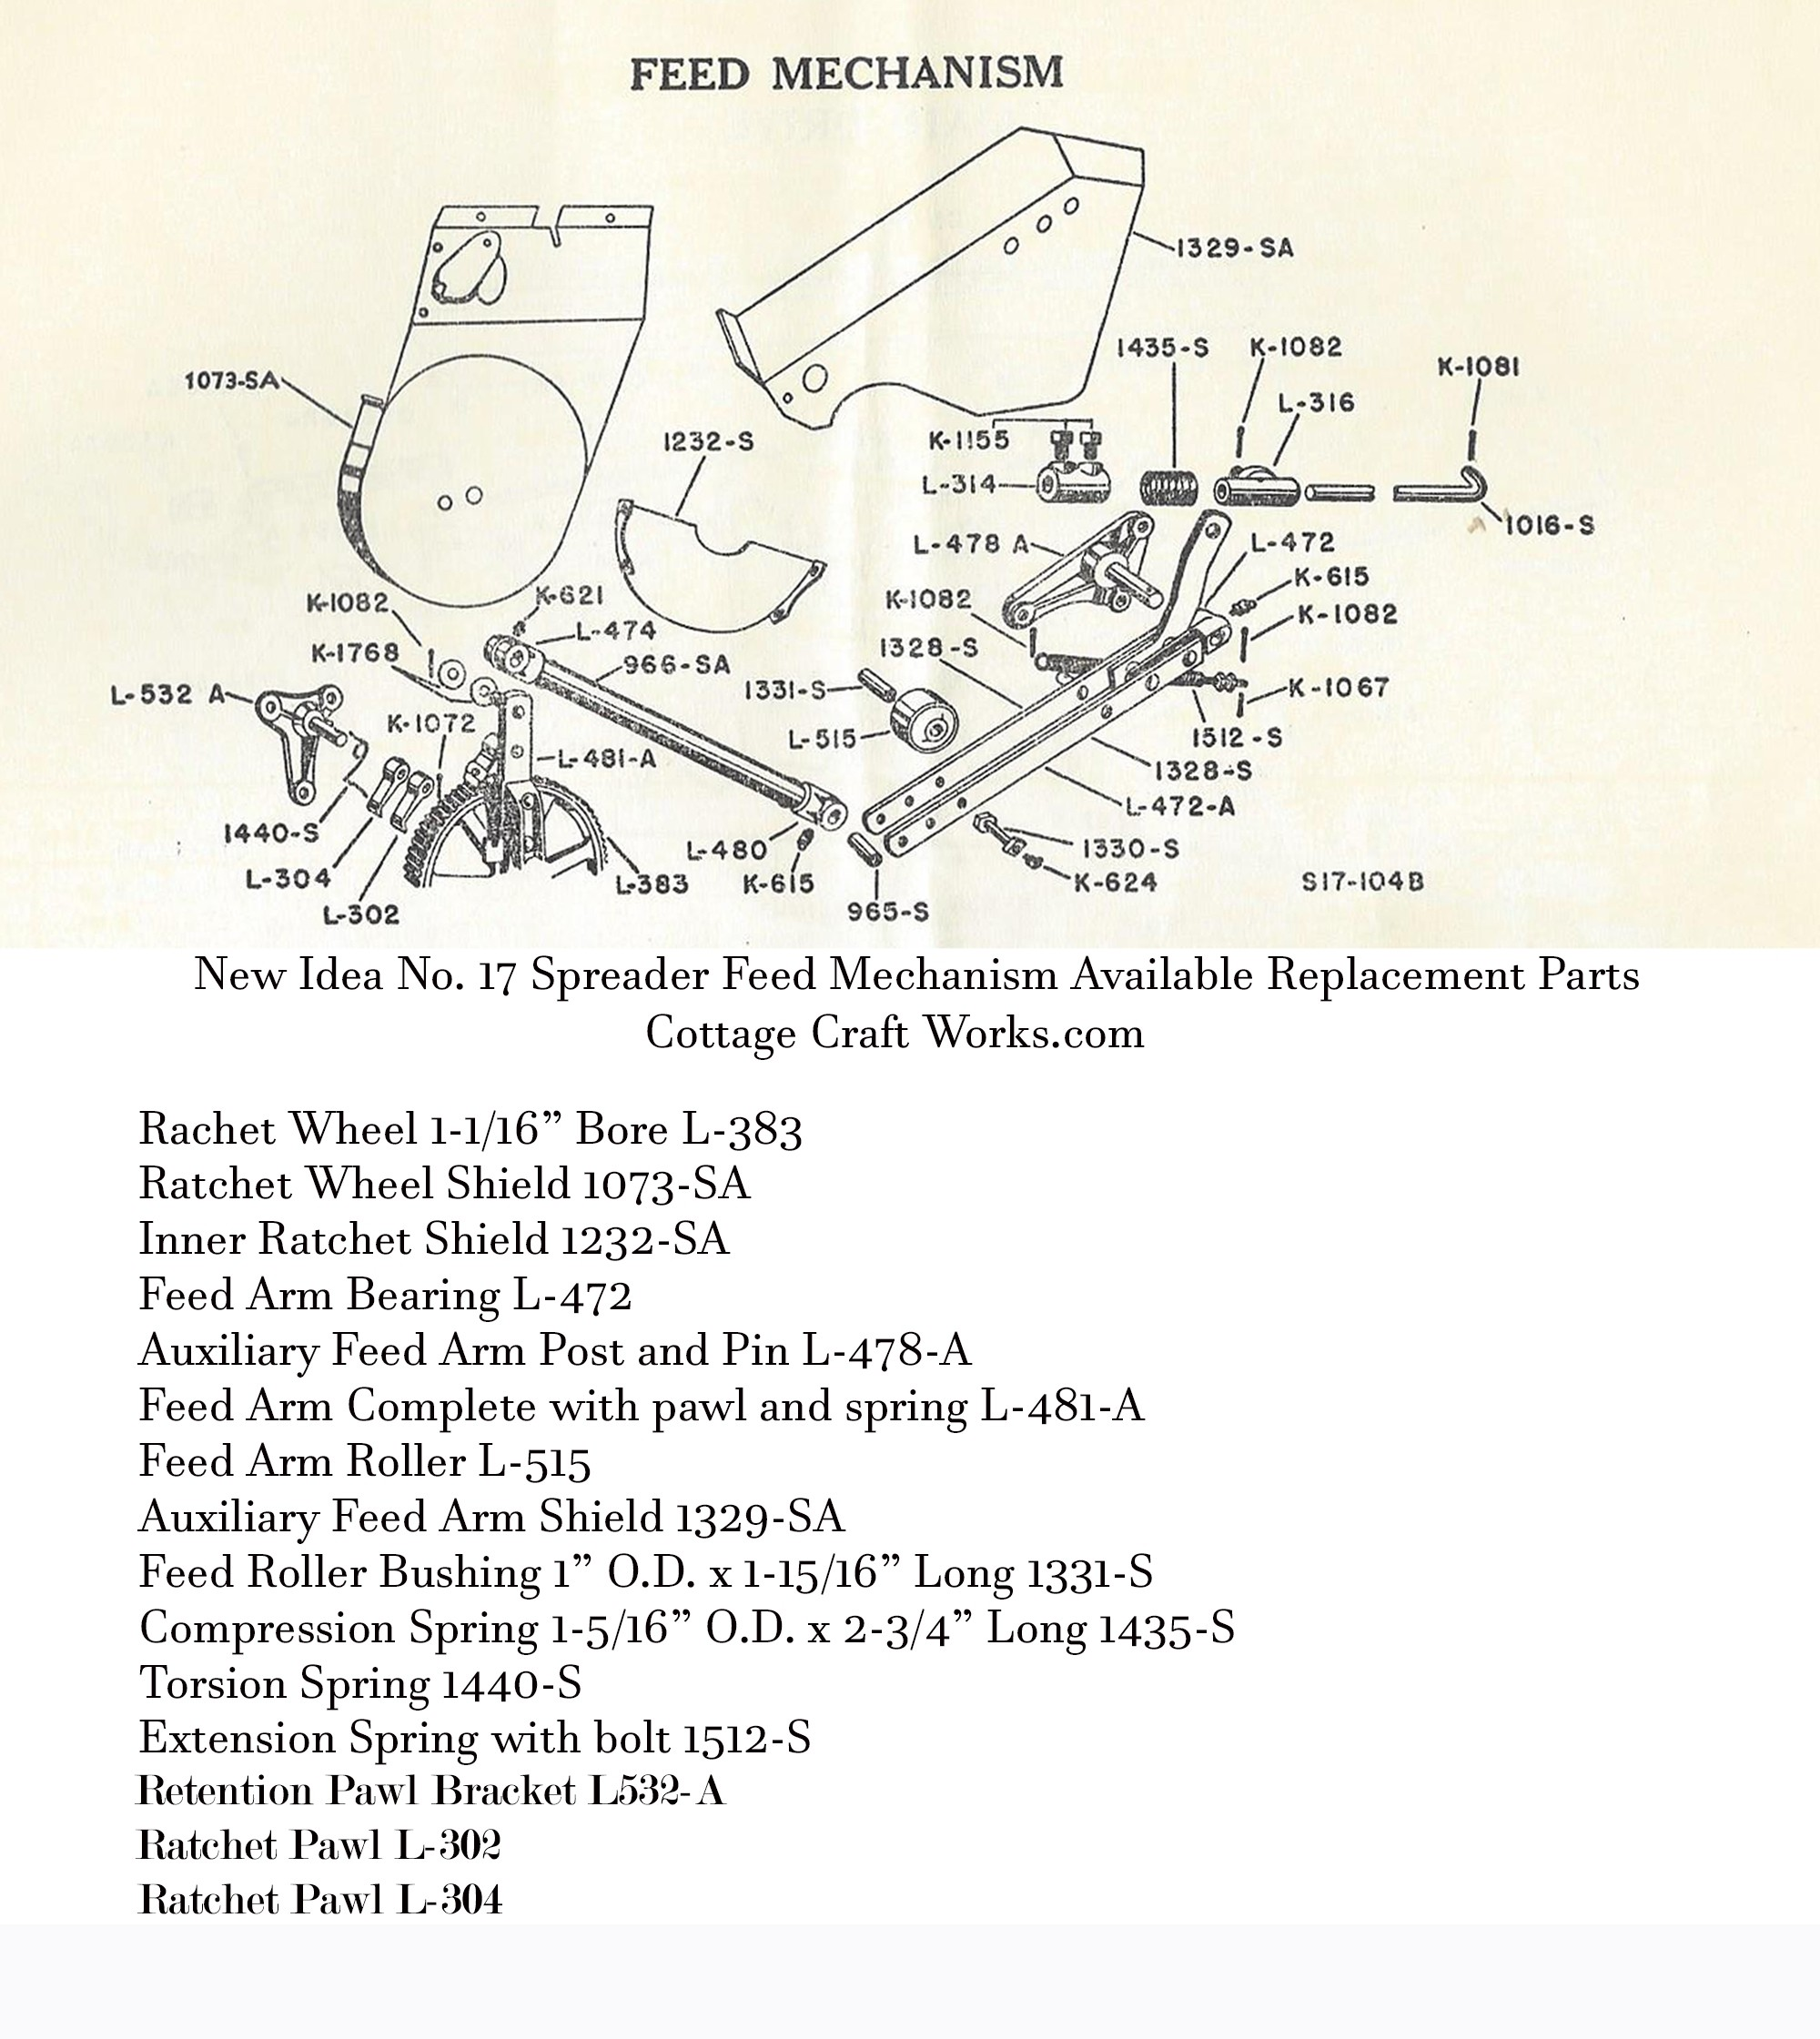 New Idea No. 17 Spreader Feed Mechanism Parts